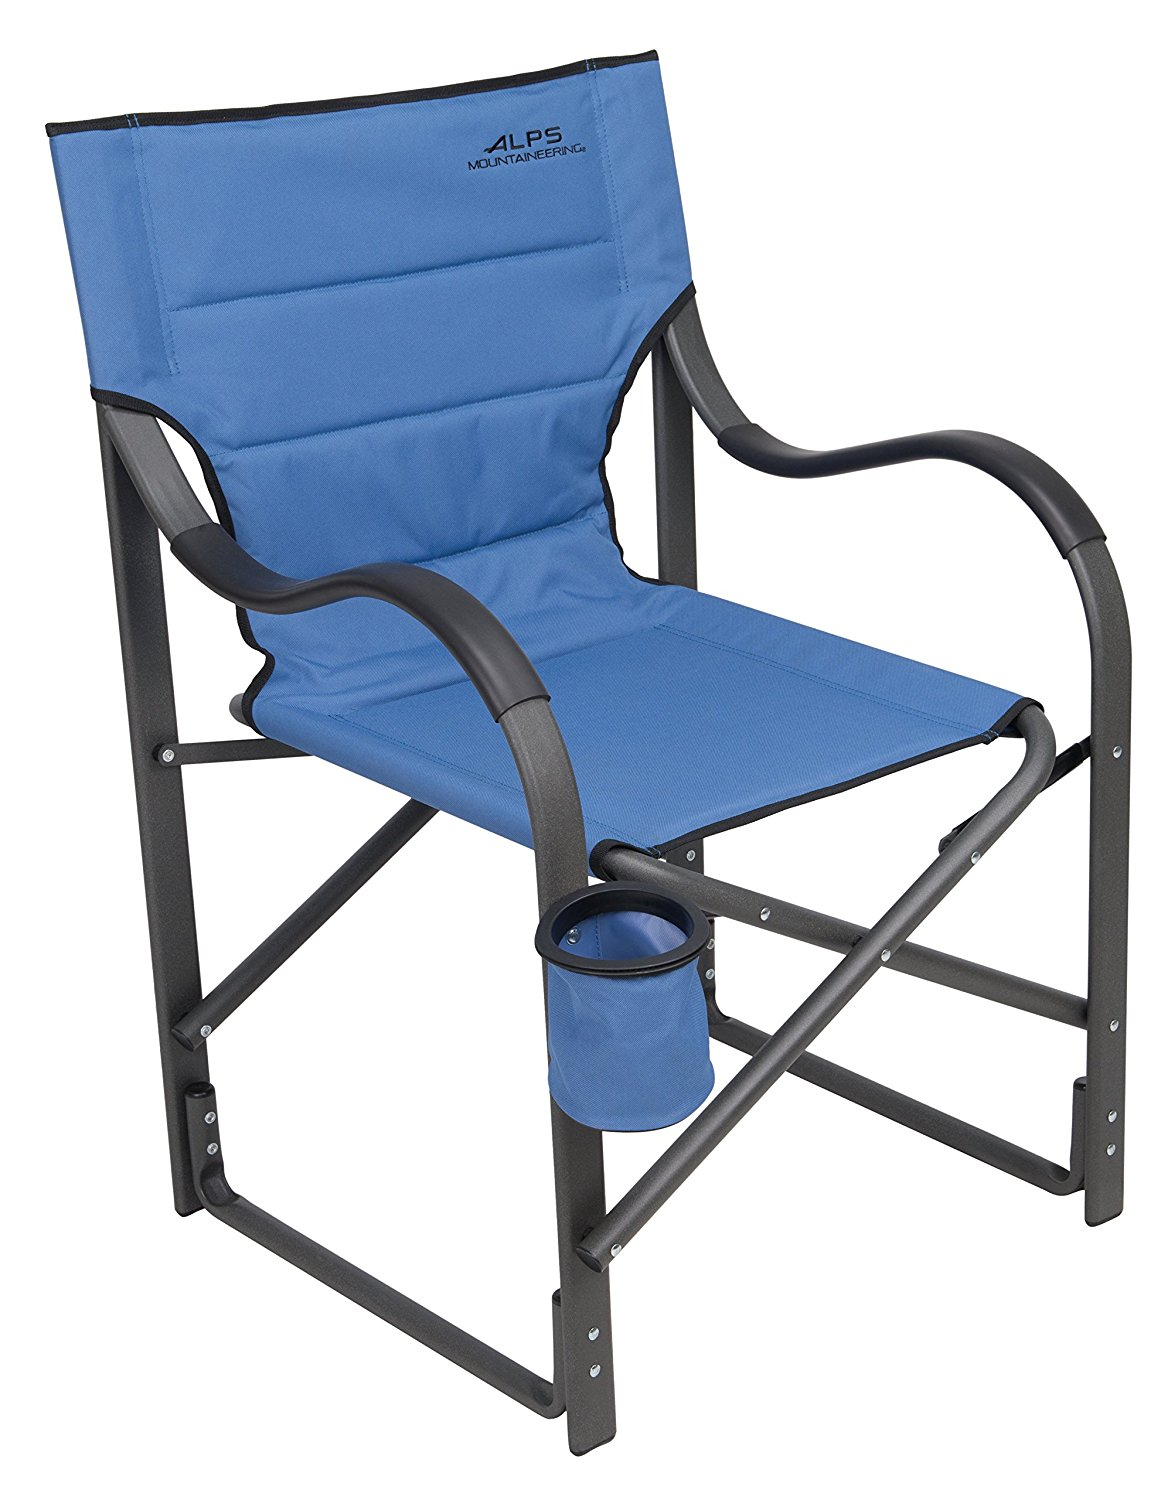 fishing chair for bad back faux leather top 10 best camping chairman foldable from alps mountaineering